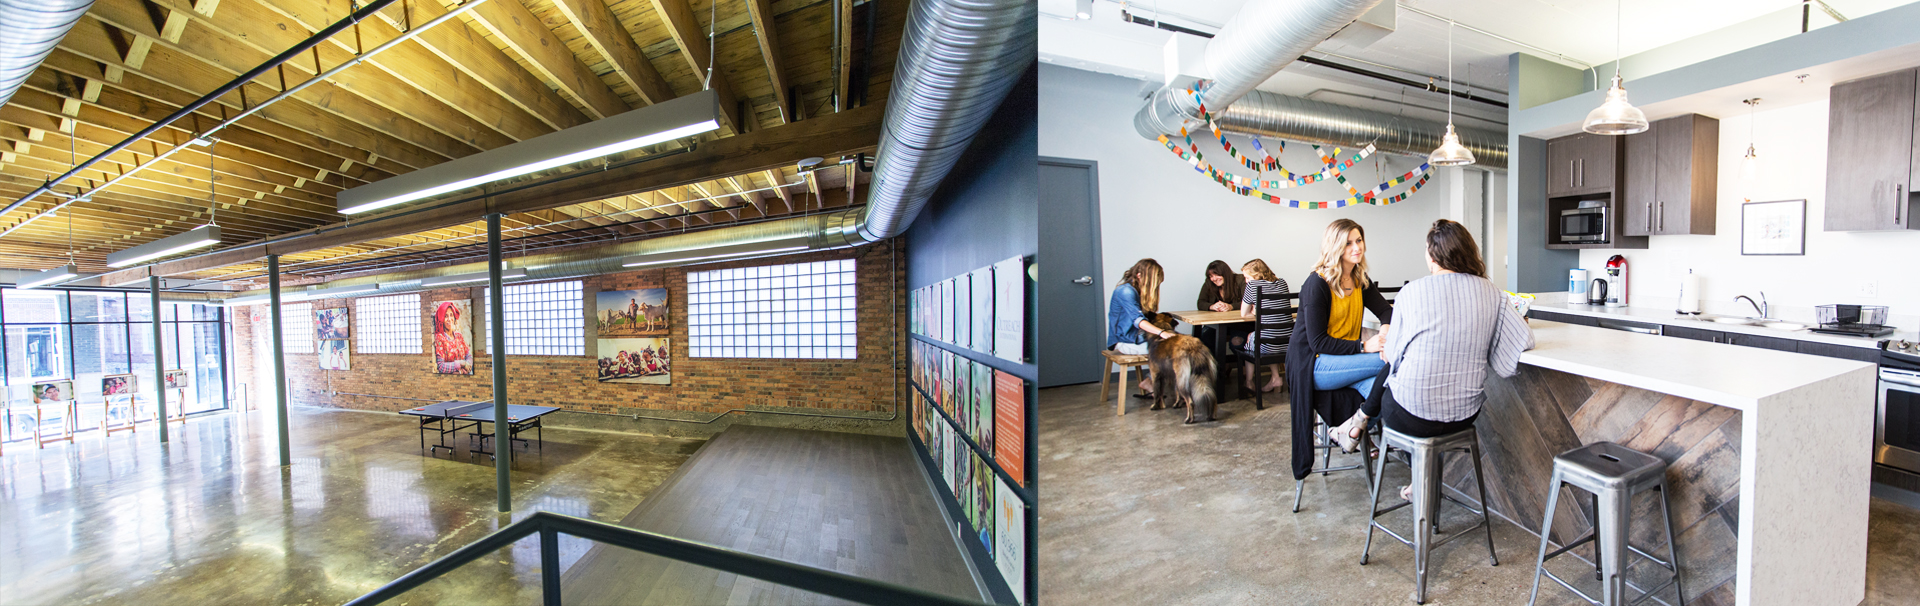 Kitchen | Rent the Space | Outreach Event Space | Kansas City